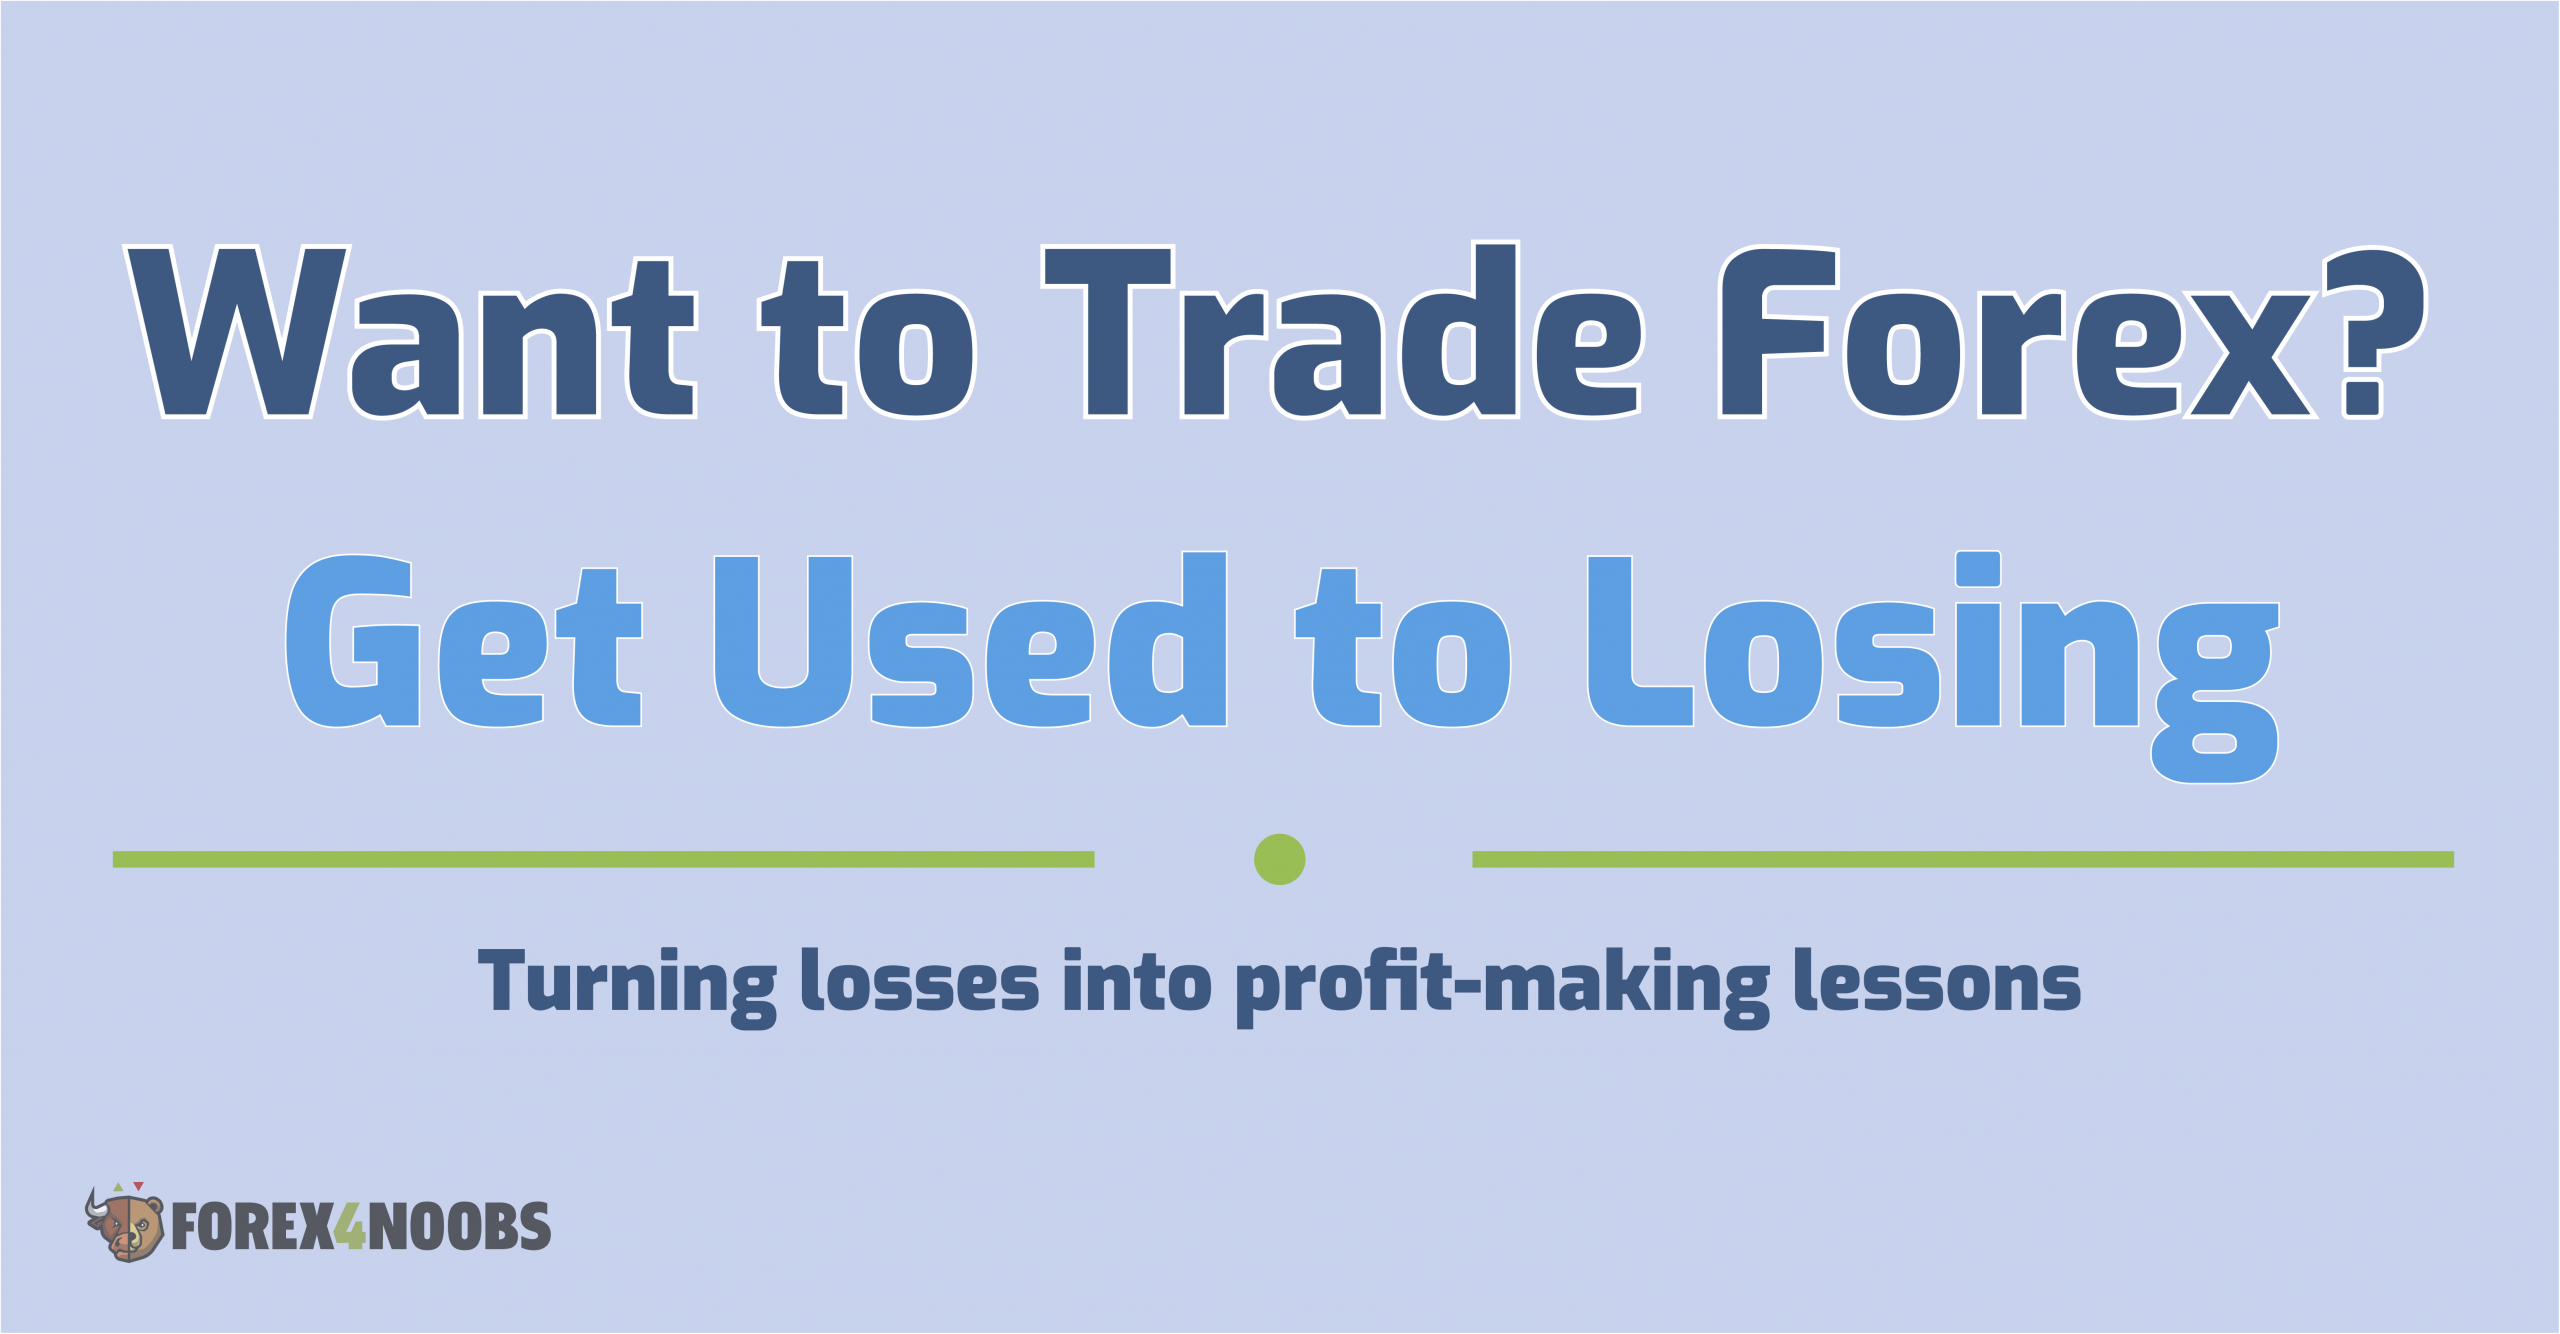 Want to Trade Forex? Get Used to Losing